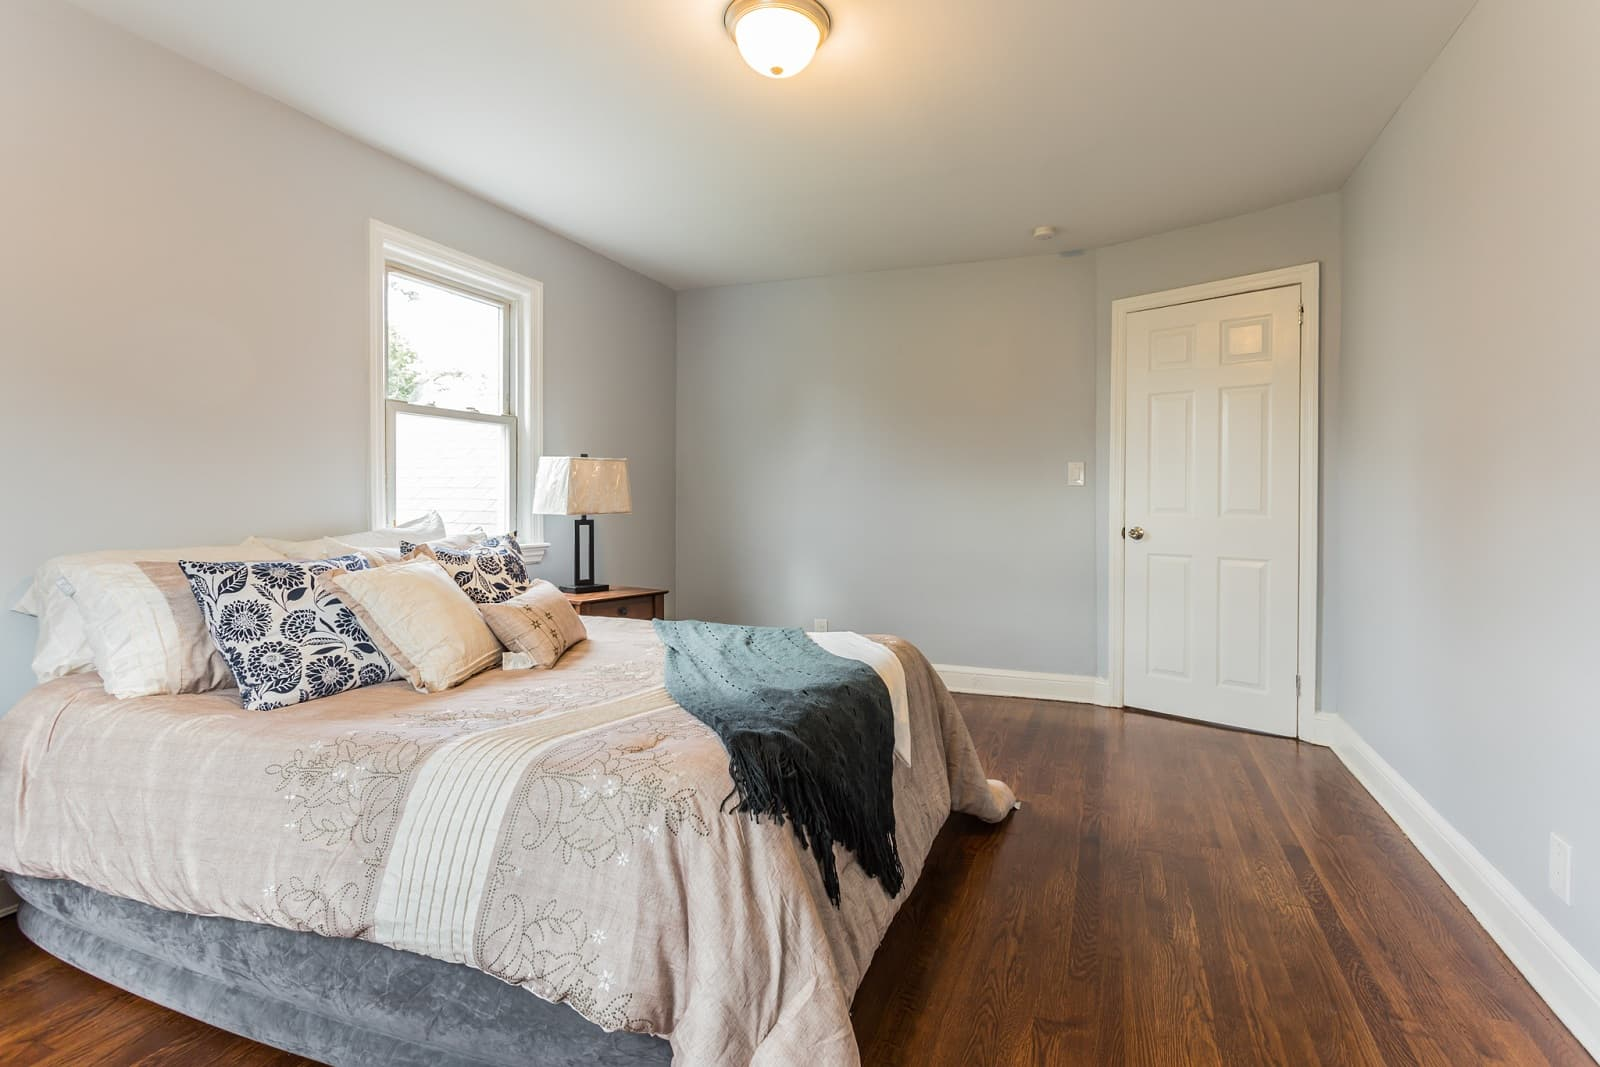 Real Estate Photography in Hempstead - NY - USA - Bedroom View